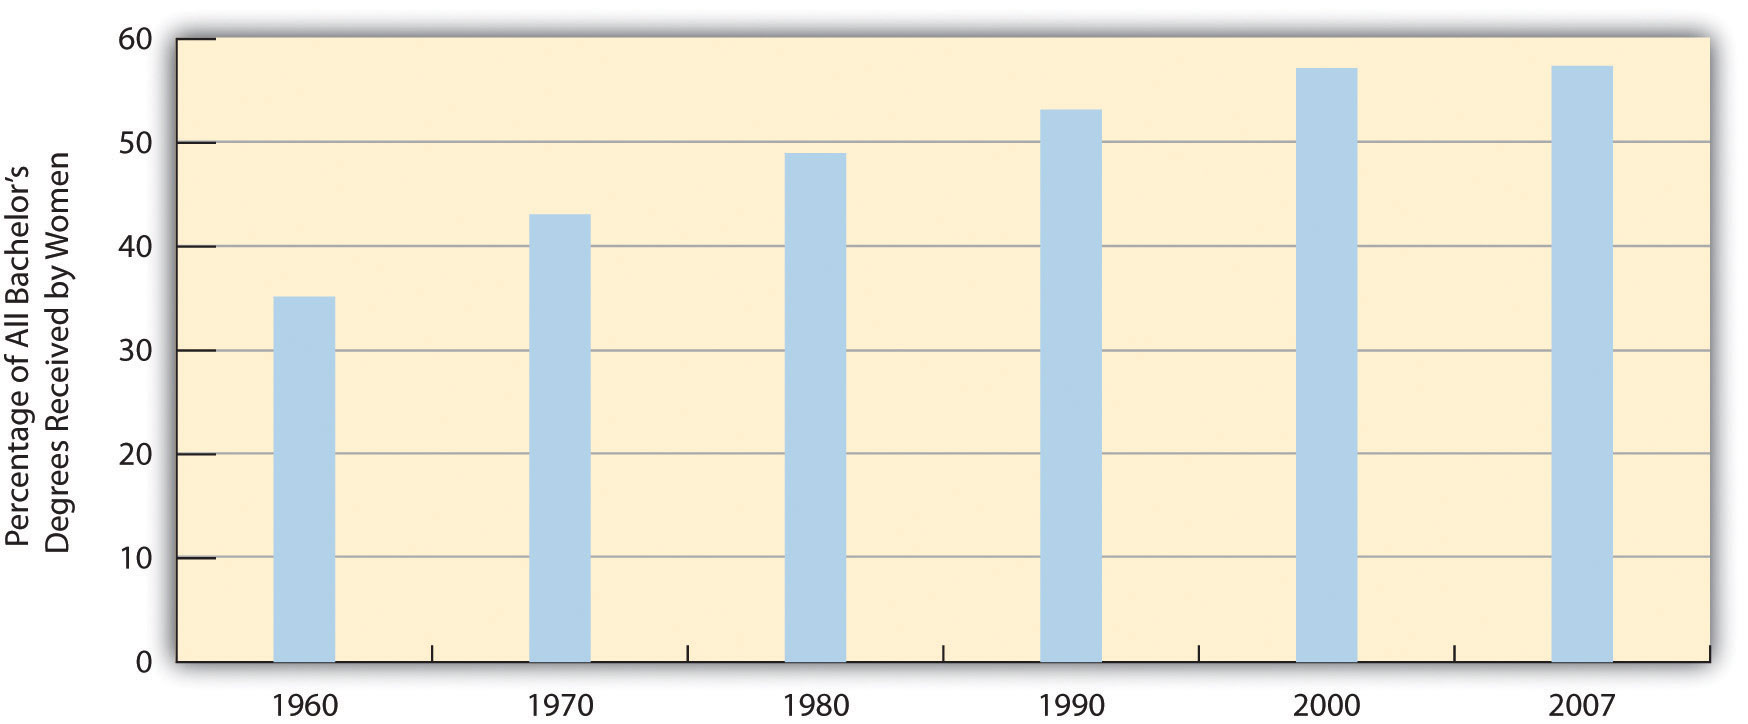 Percentage of All Bachelor's Degrees Received by Women. From 1960 to 2007 the percentage has risen from 35% to around 58%